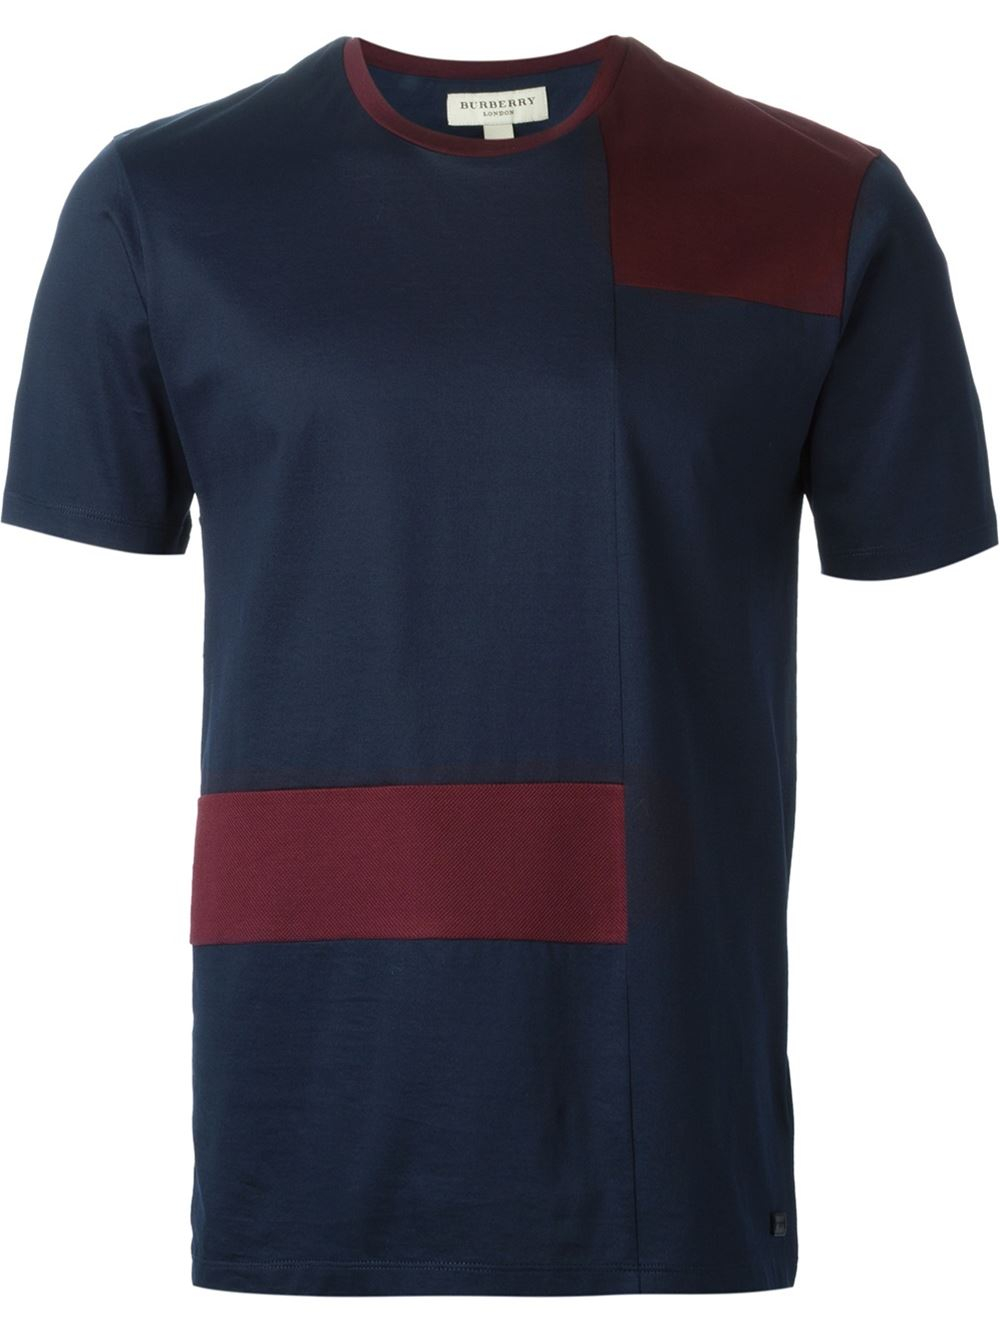 burberry london 39 cunningham 39 t shirt in blue for men lyst